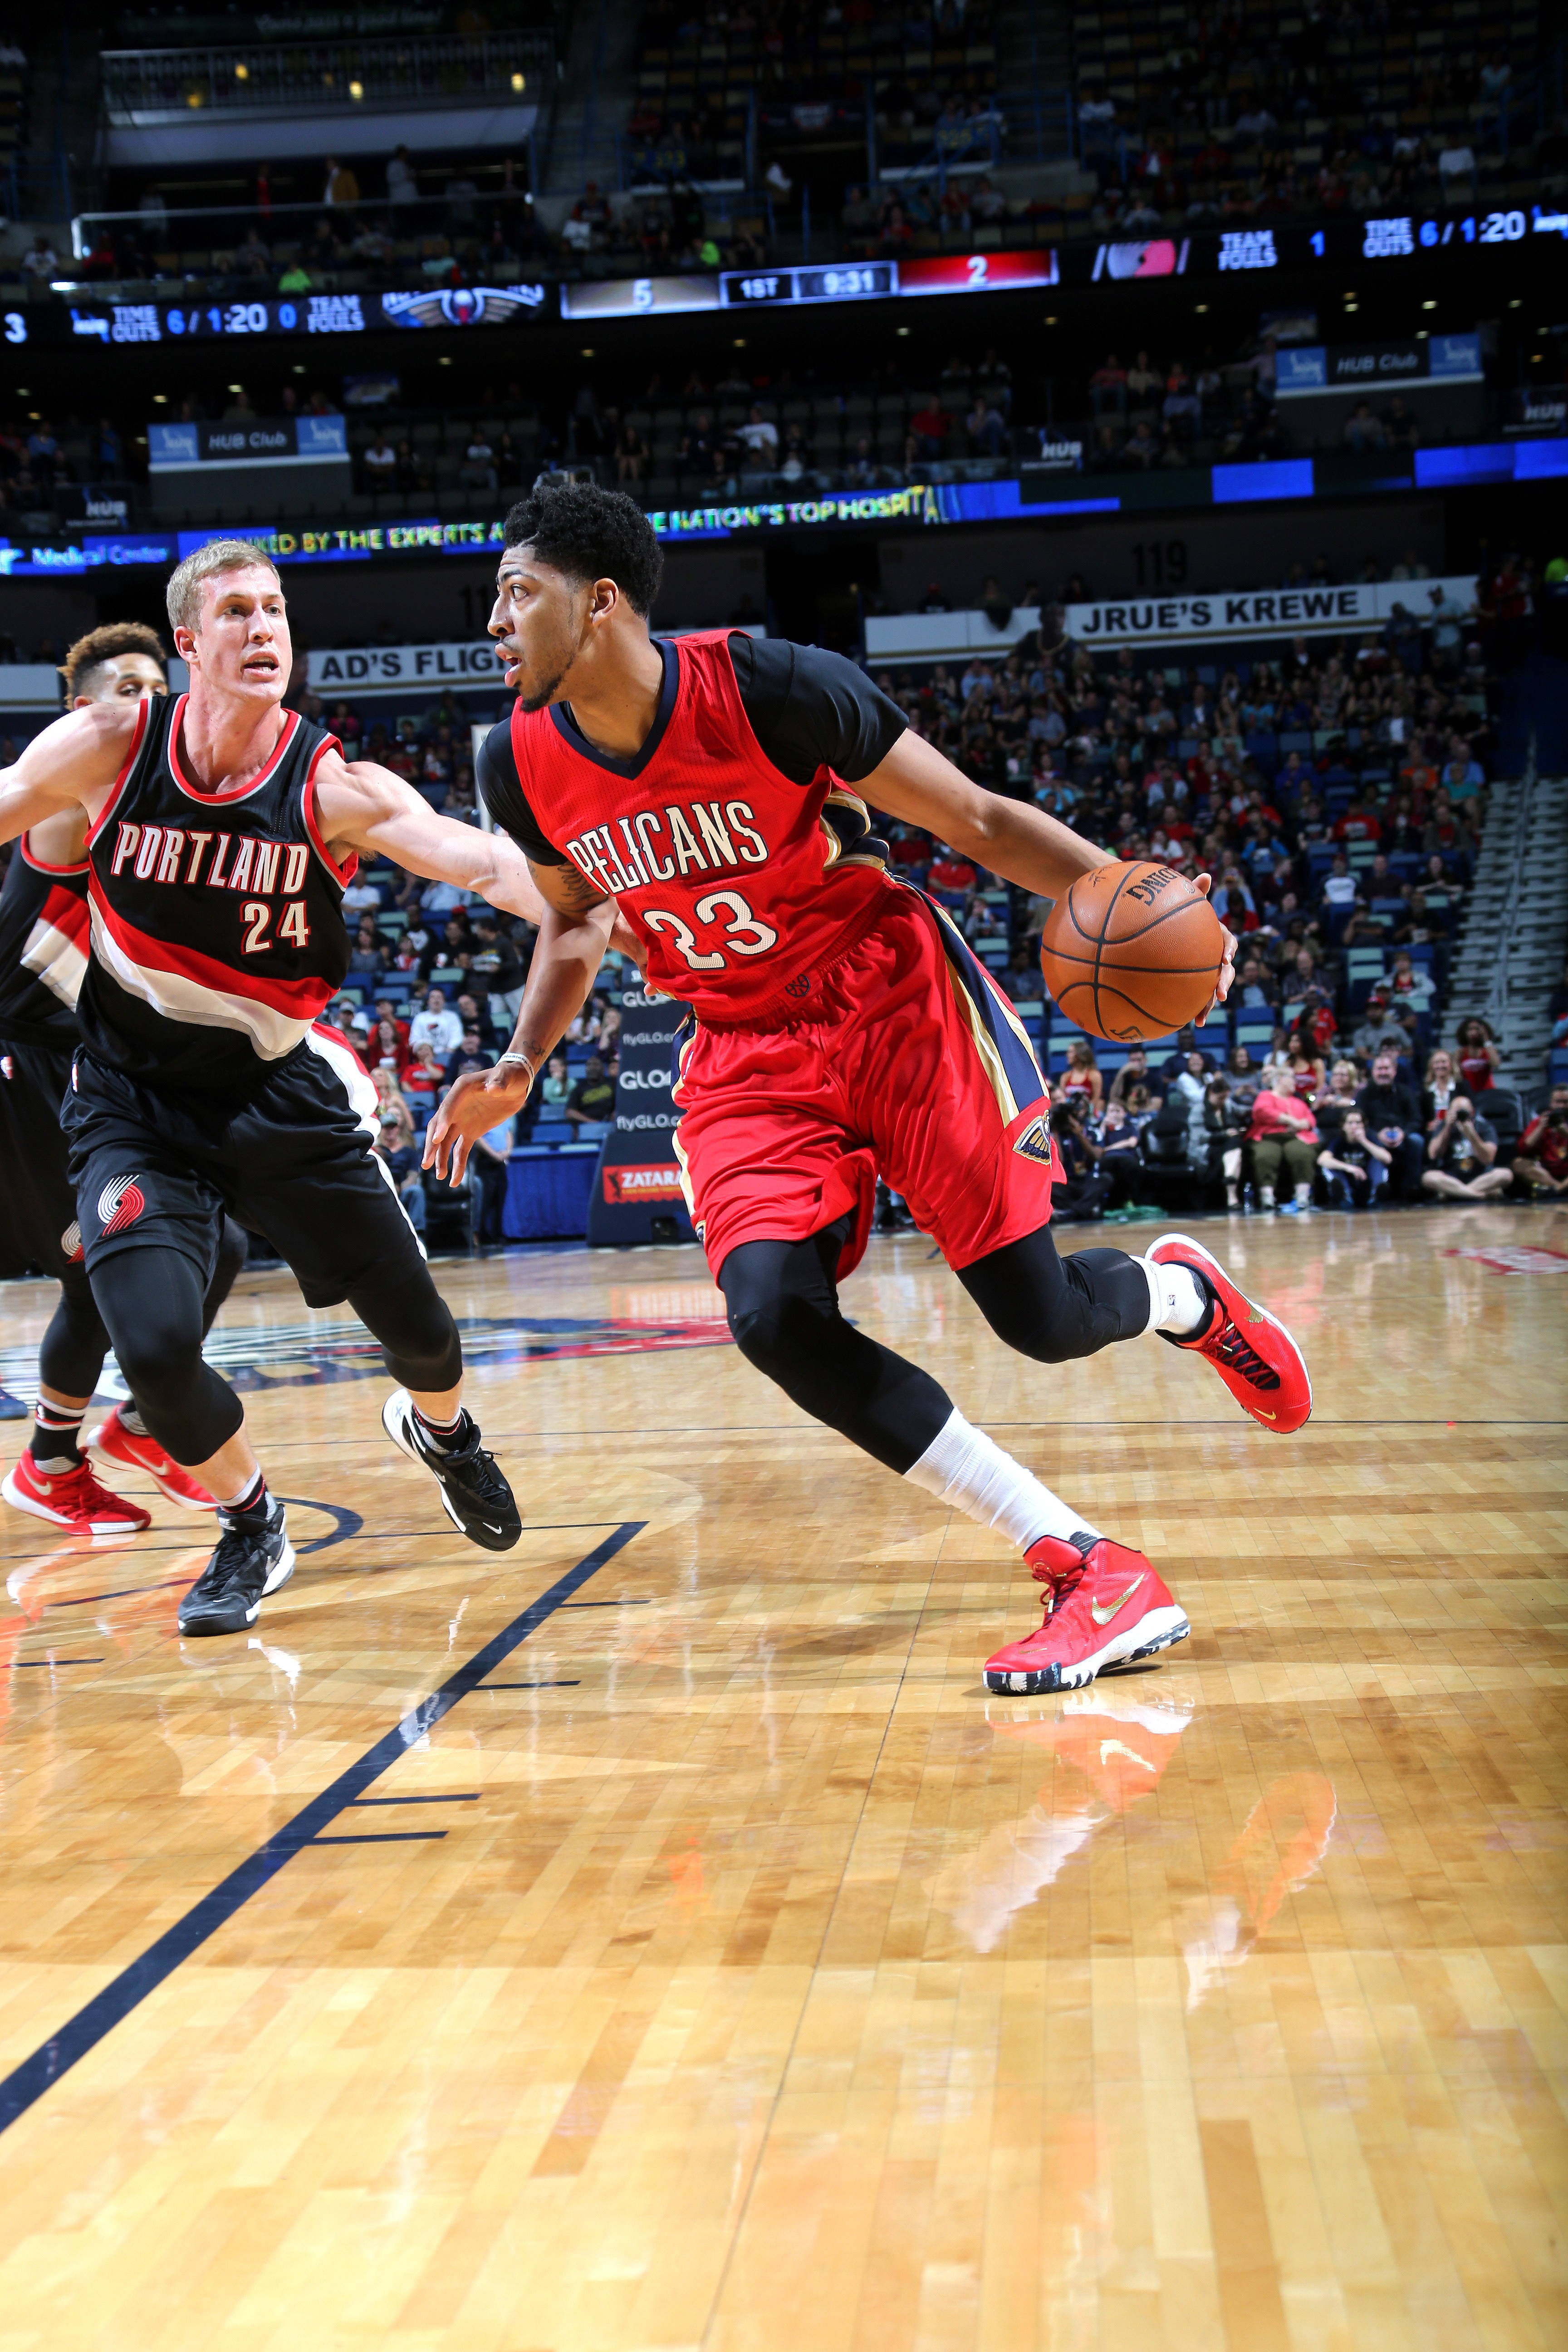 NEW ORLEANS, LA - DECEMBER 23: Anthony Davis #23 of the New Orleans Pelicans handles the ball during the game against the Portland Trail Blazers on December 23, 2015 at the Smoothie King Center in New Orleans, Louisiana. (Photo by Layne Murdoch/NBAE via G